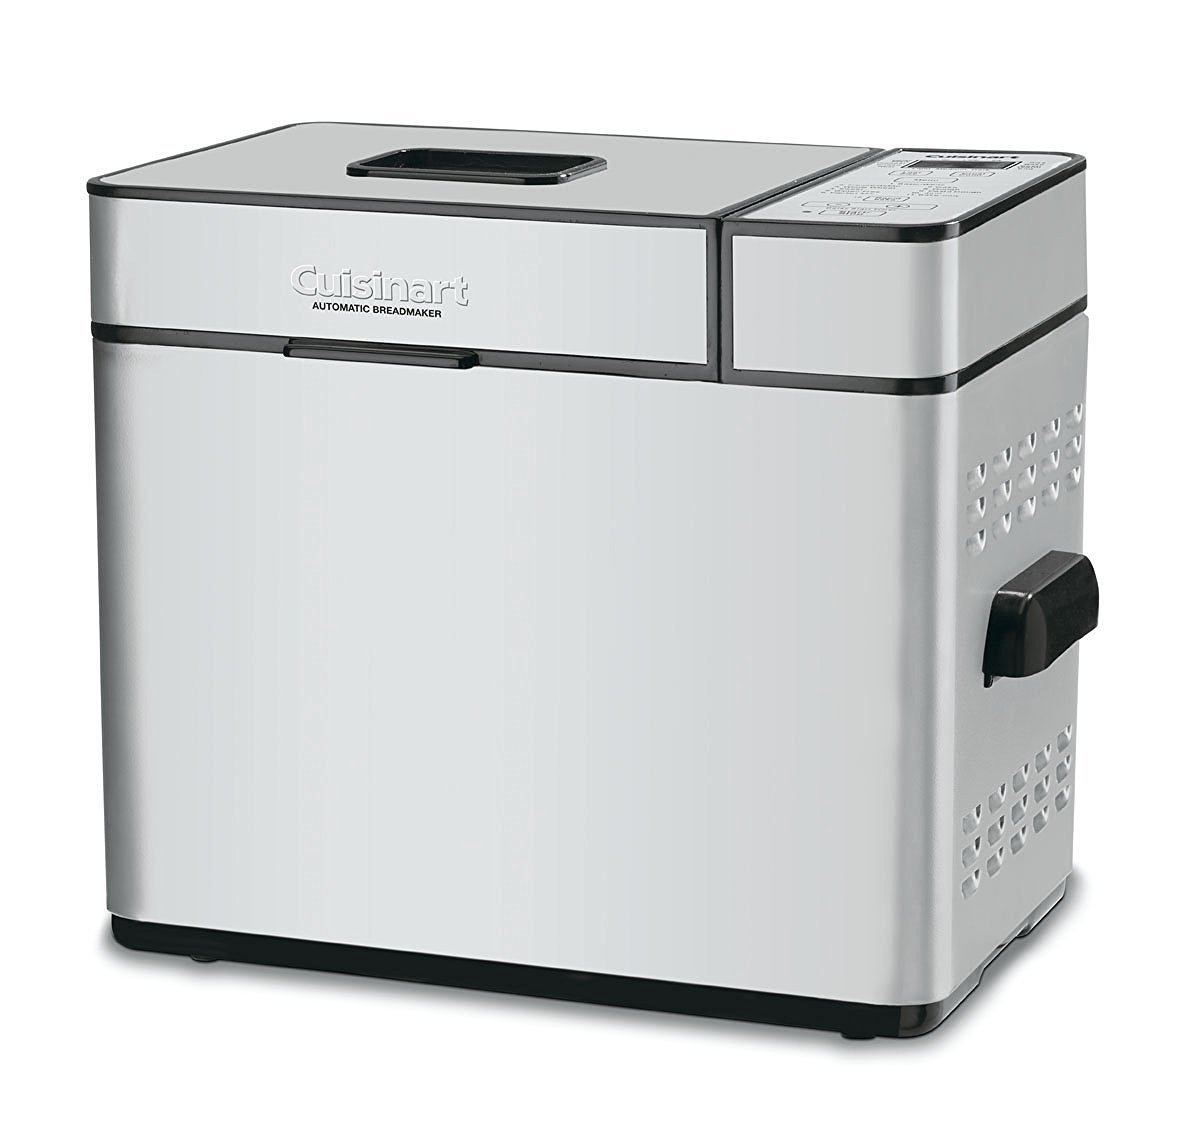 Cuisinart BMKR-200PC Fully Automatic Compact Bread Maker